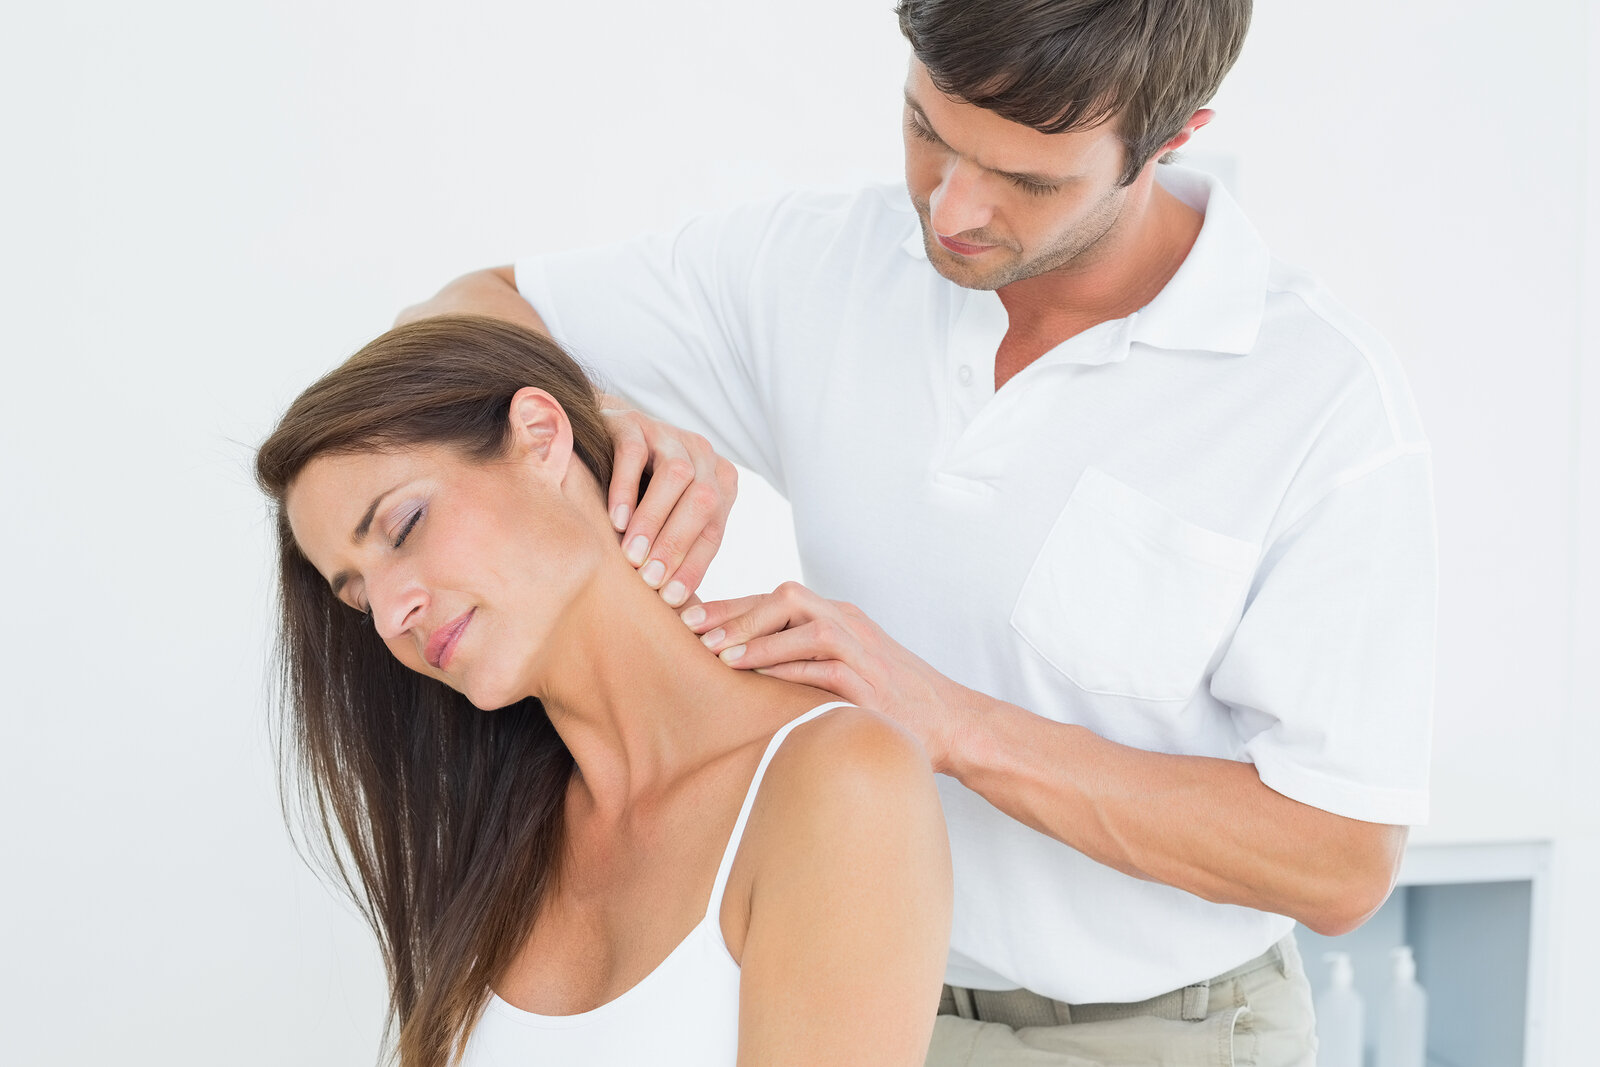 Male chiropractor massaging a young woman's neck in the medical